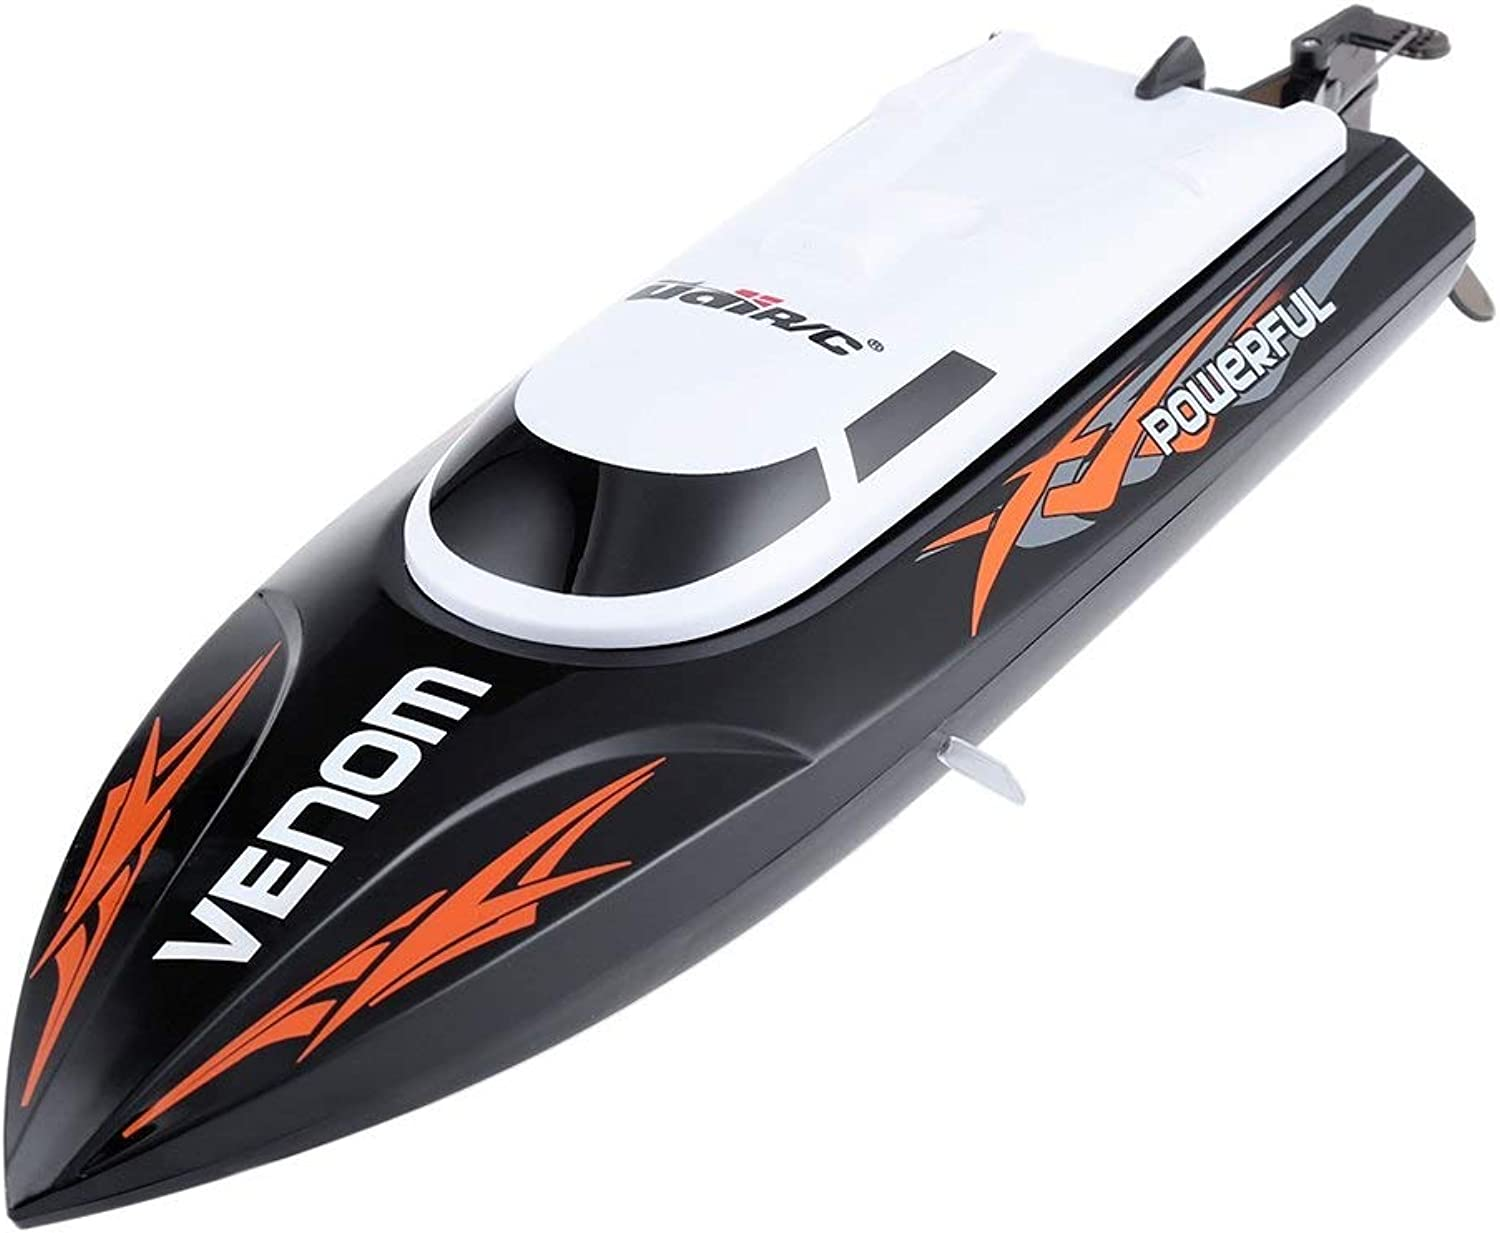 Generic UDI 001 Tempo Power Venom 2.4G RC Boat with Auto Rectifying Deviation Direction Function Black